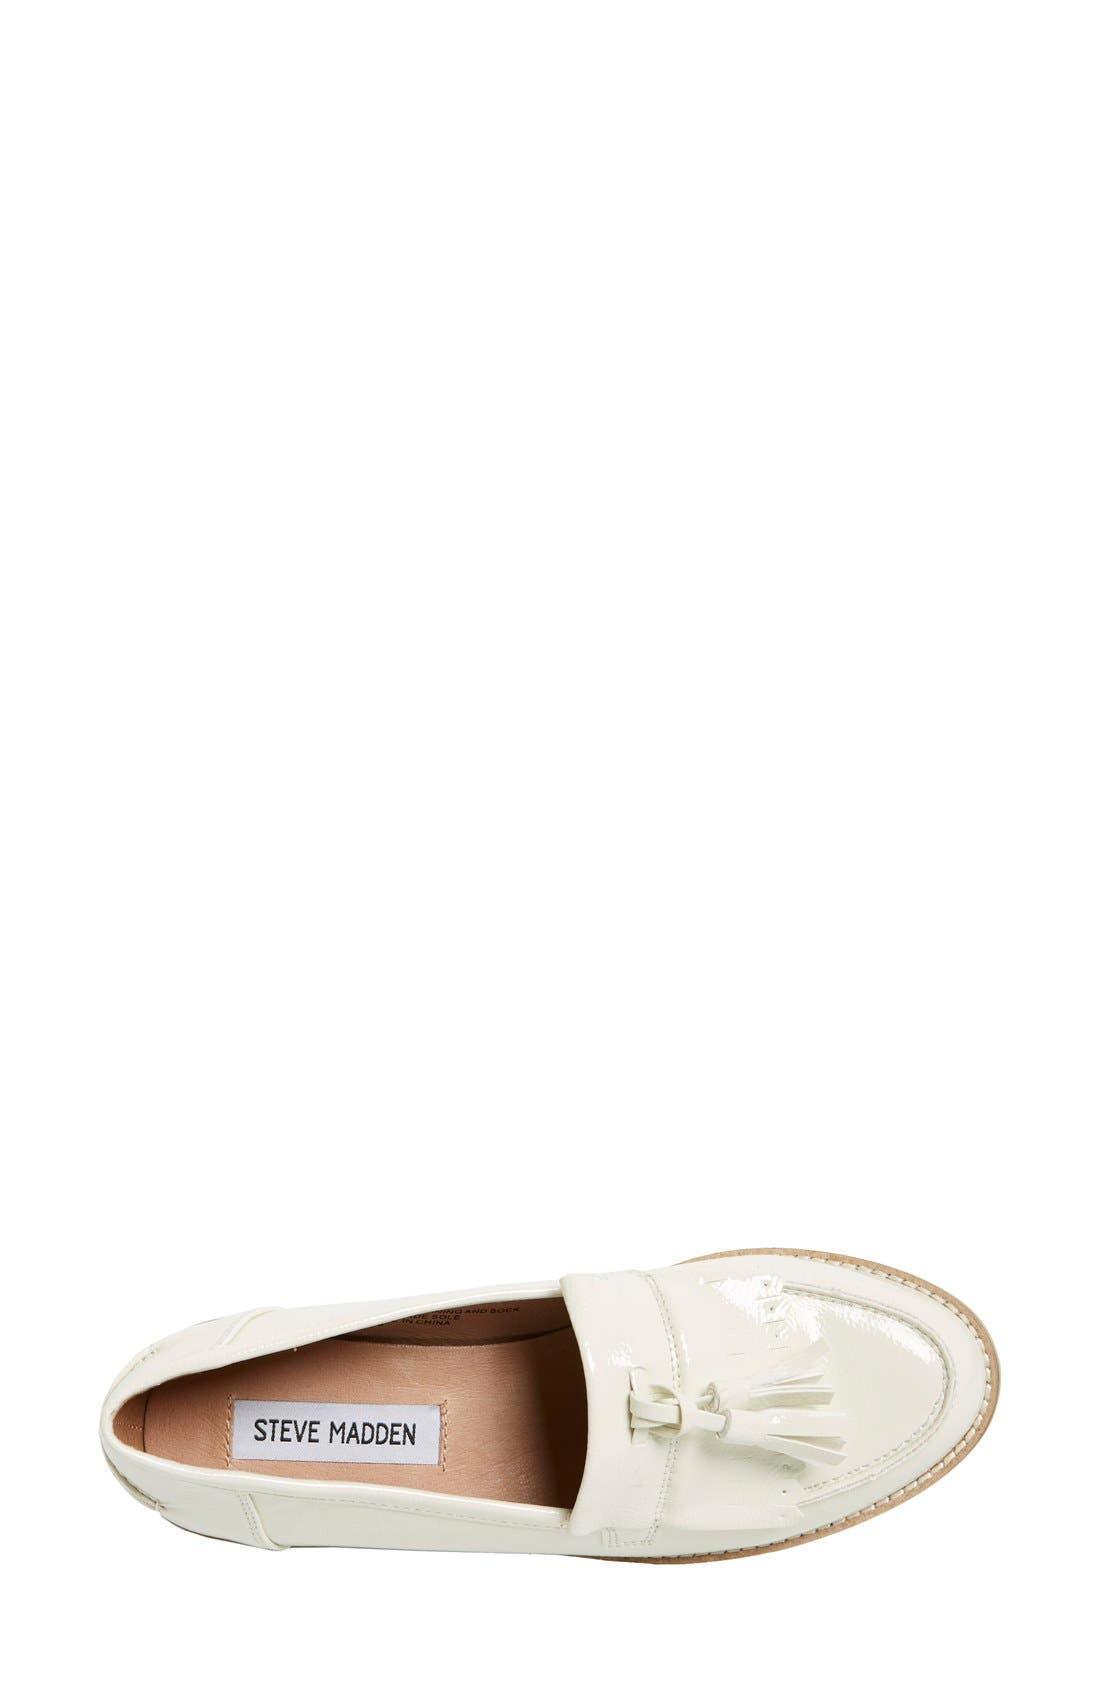 Alternate Image 3  - Steve Madden 'Meela' Loafer (Women)